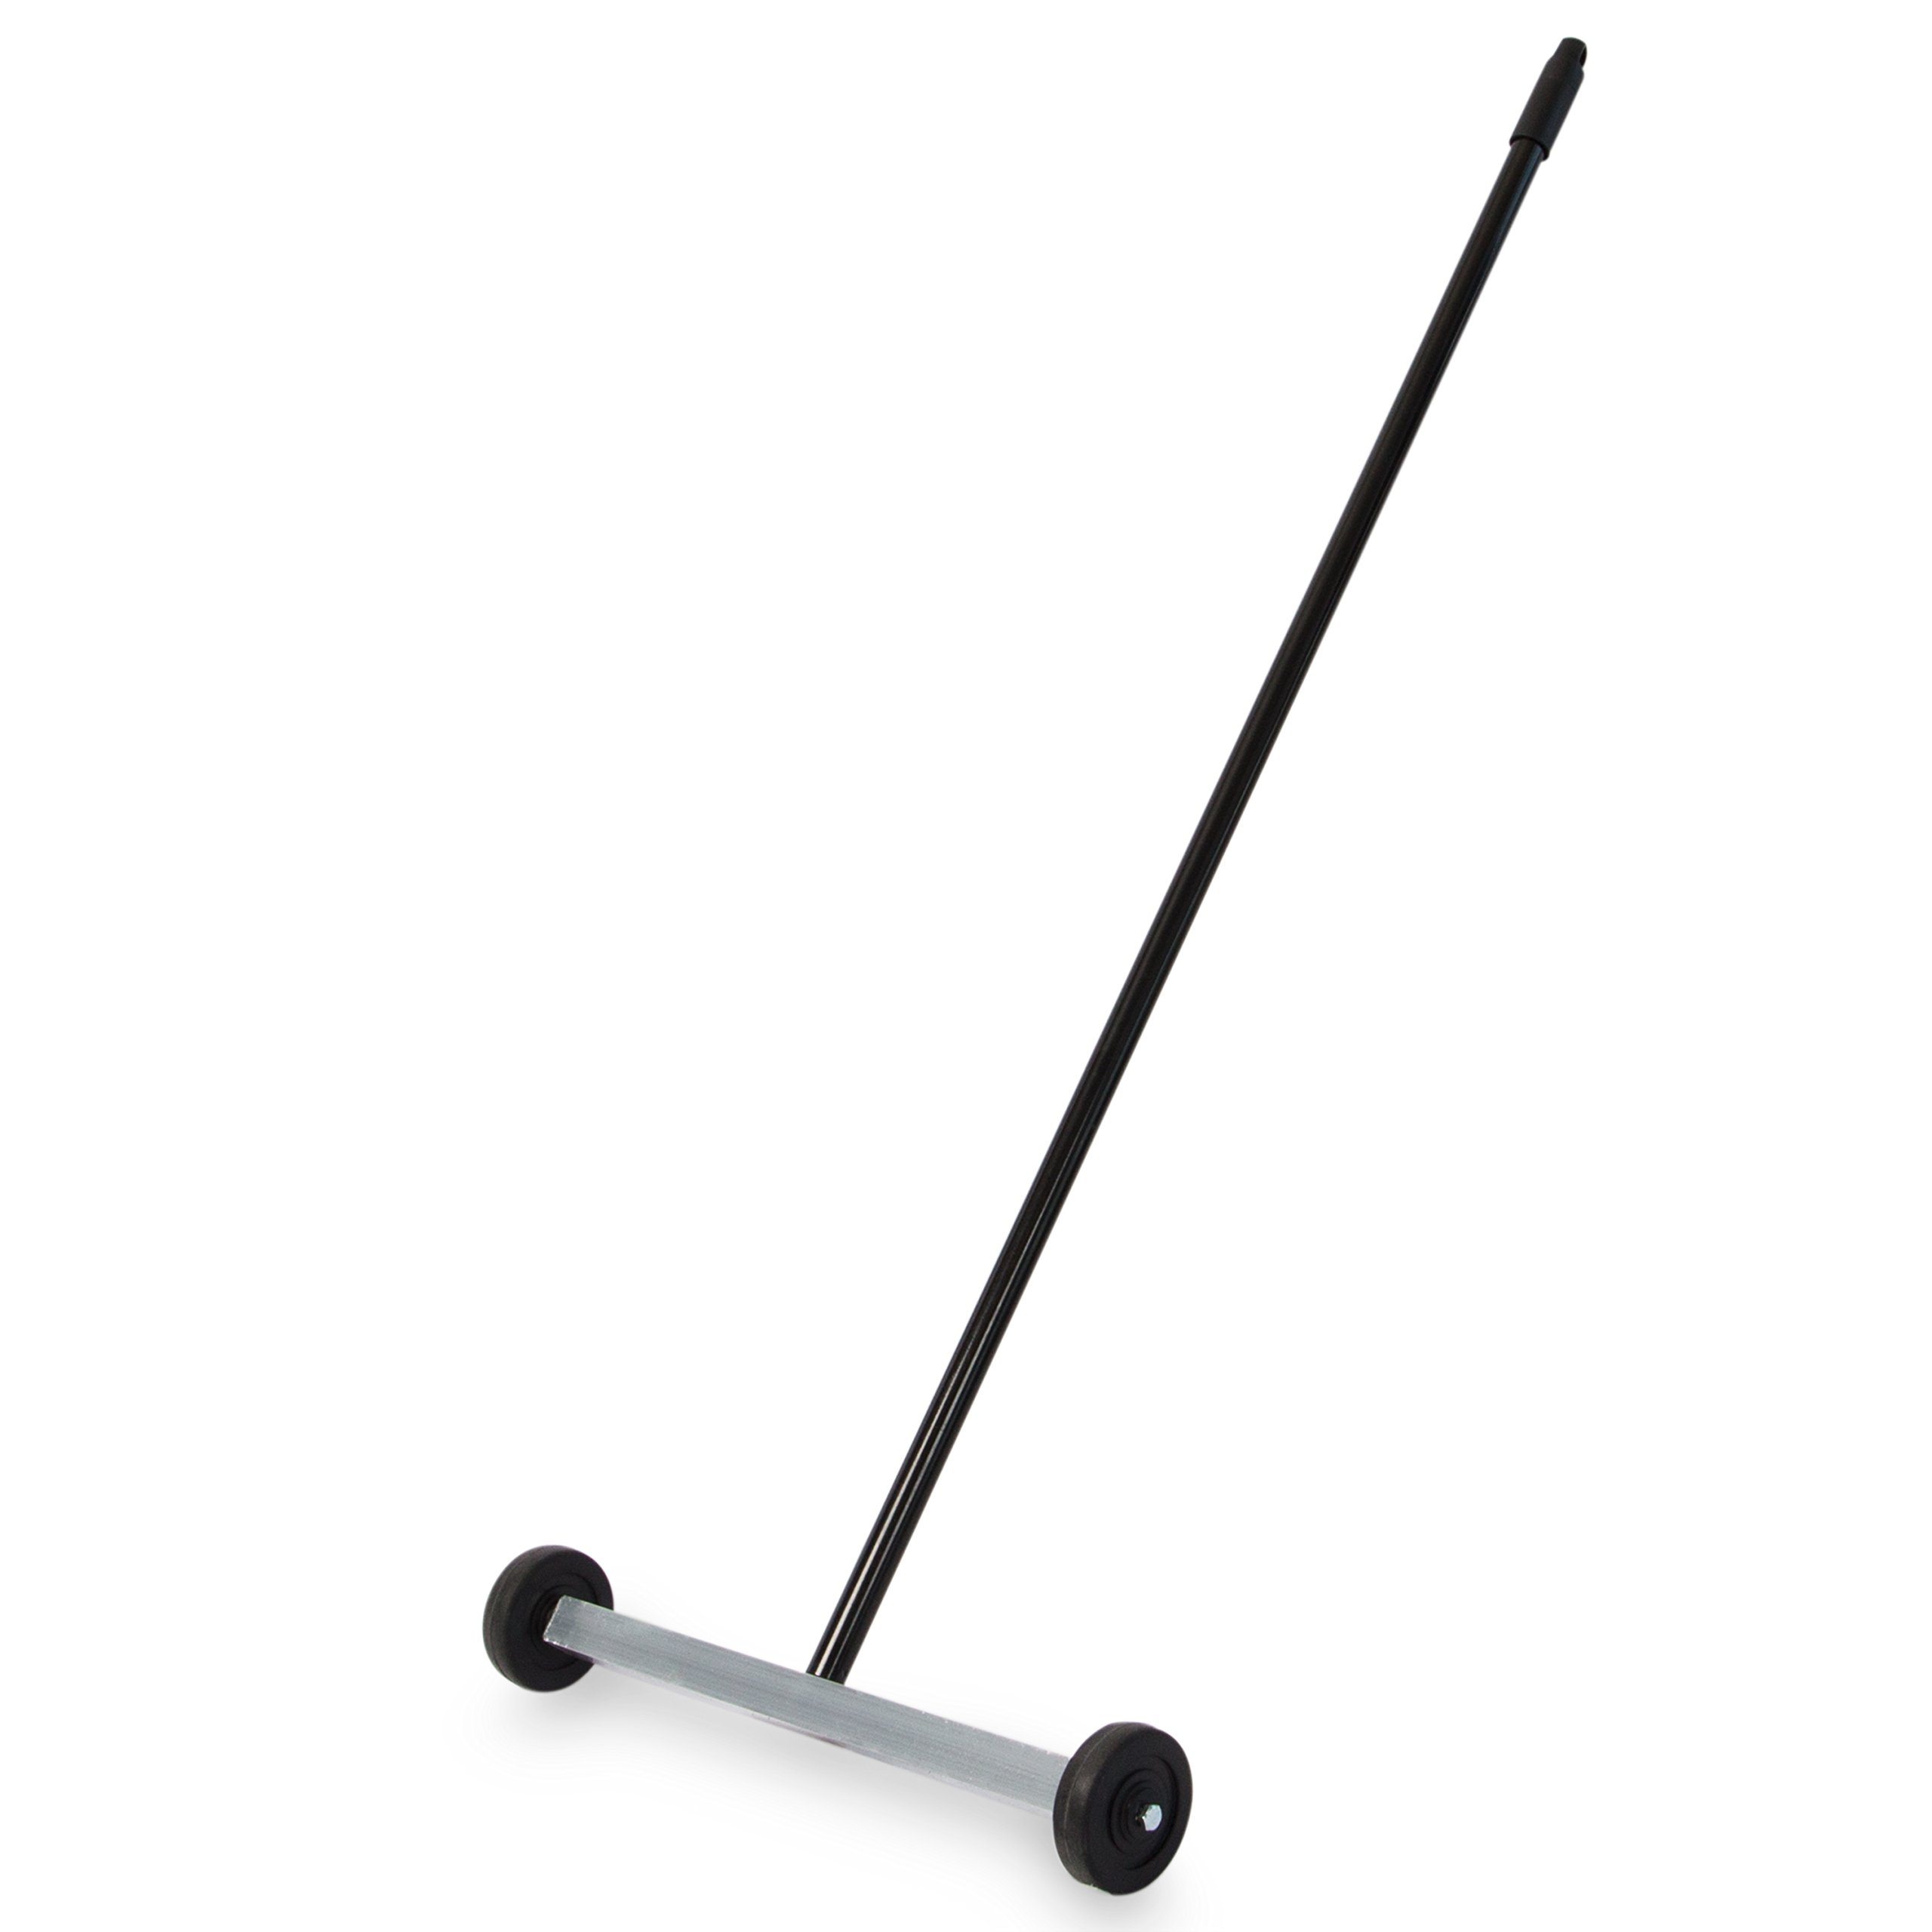 "Master Magnetics - Magnetic Sweeper with Wheels, 14.5"" - Pick up Nails, Needles, Screws and More 07263"